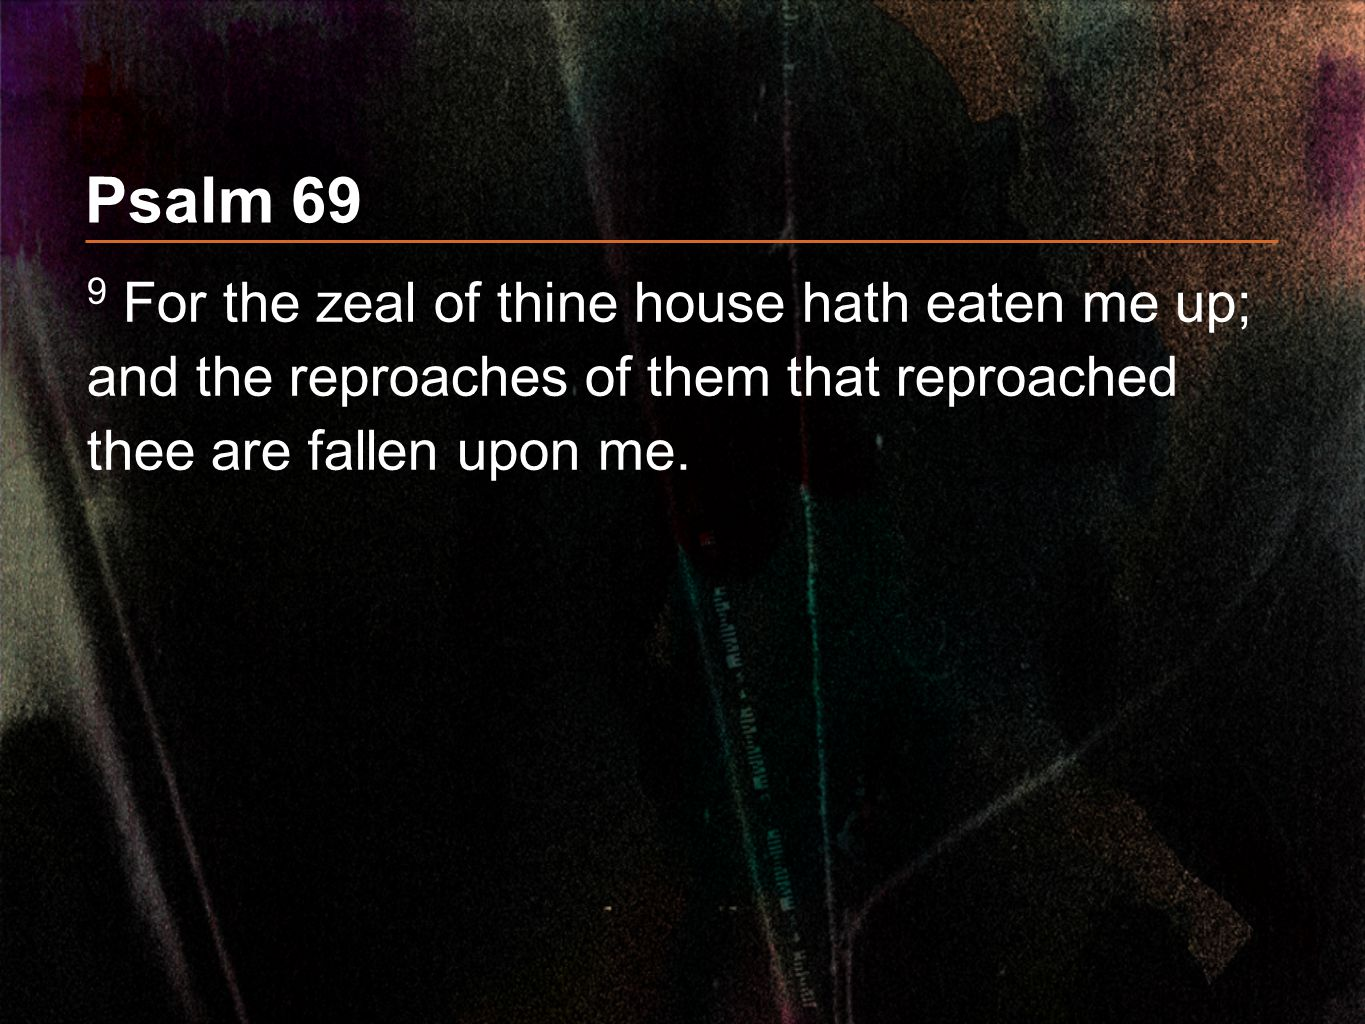 Psalm 69 9 For the zeal of thine house hath eaten me up; and the reproaches of them that reproached thee are fallen upon me.